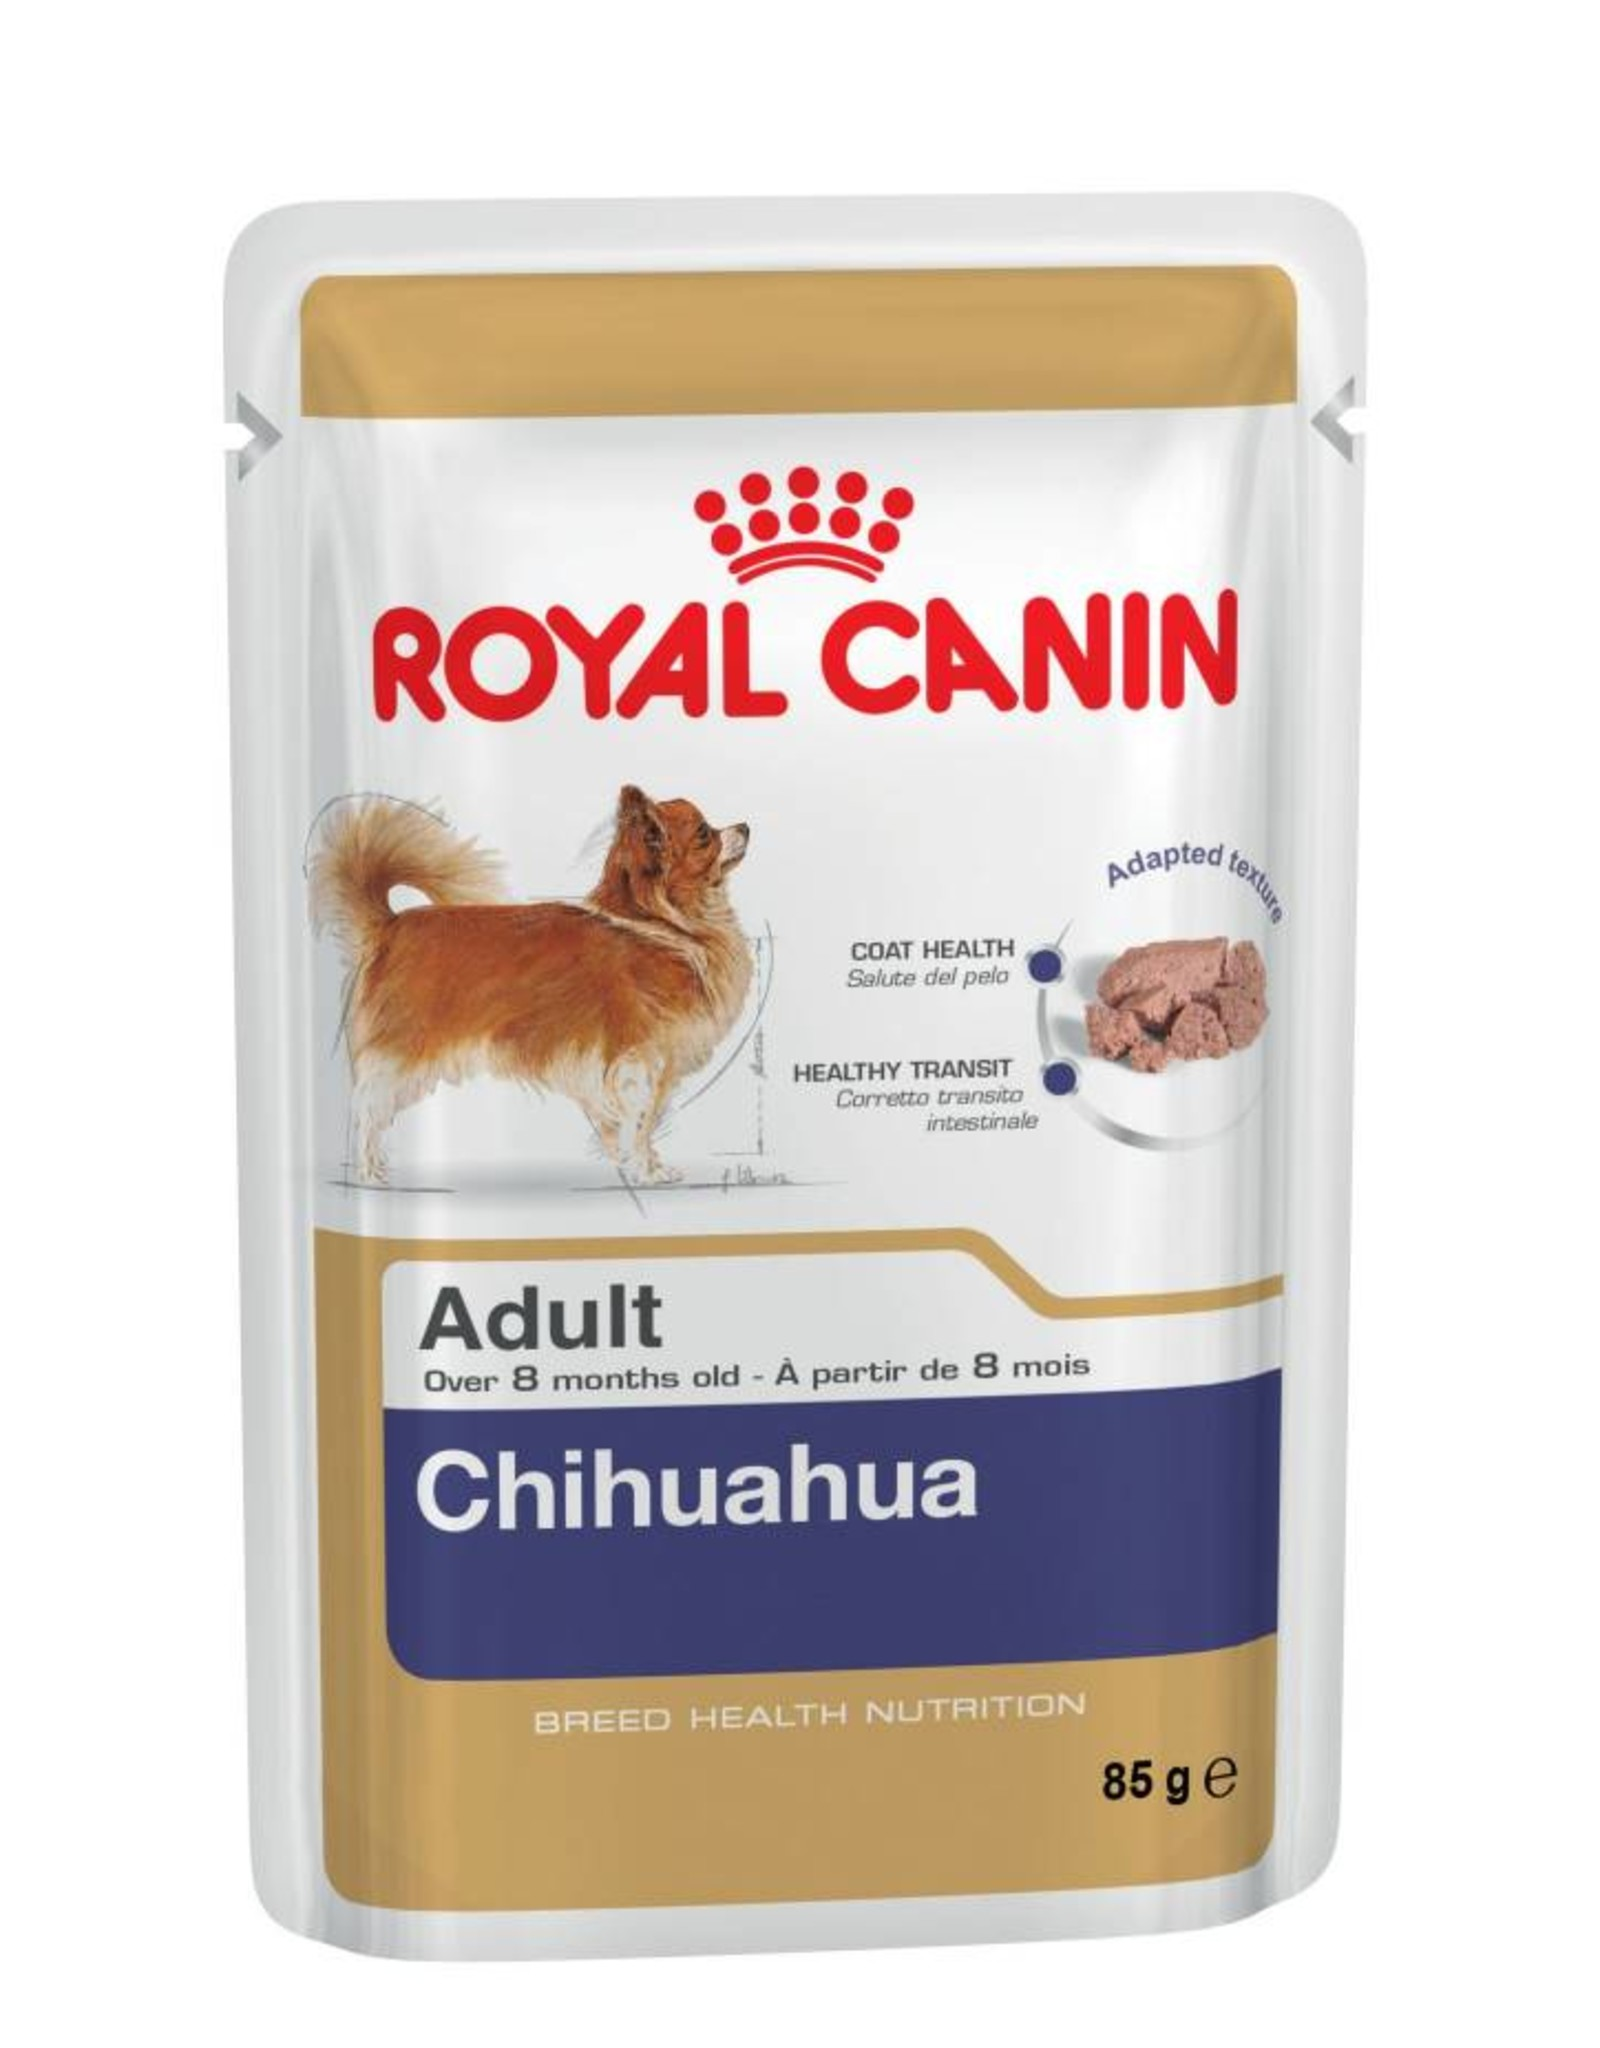 Royal Canin Chihuahua Adult Dog Wet Food Pouch, 85g